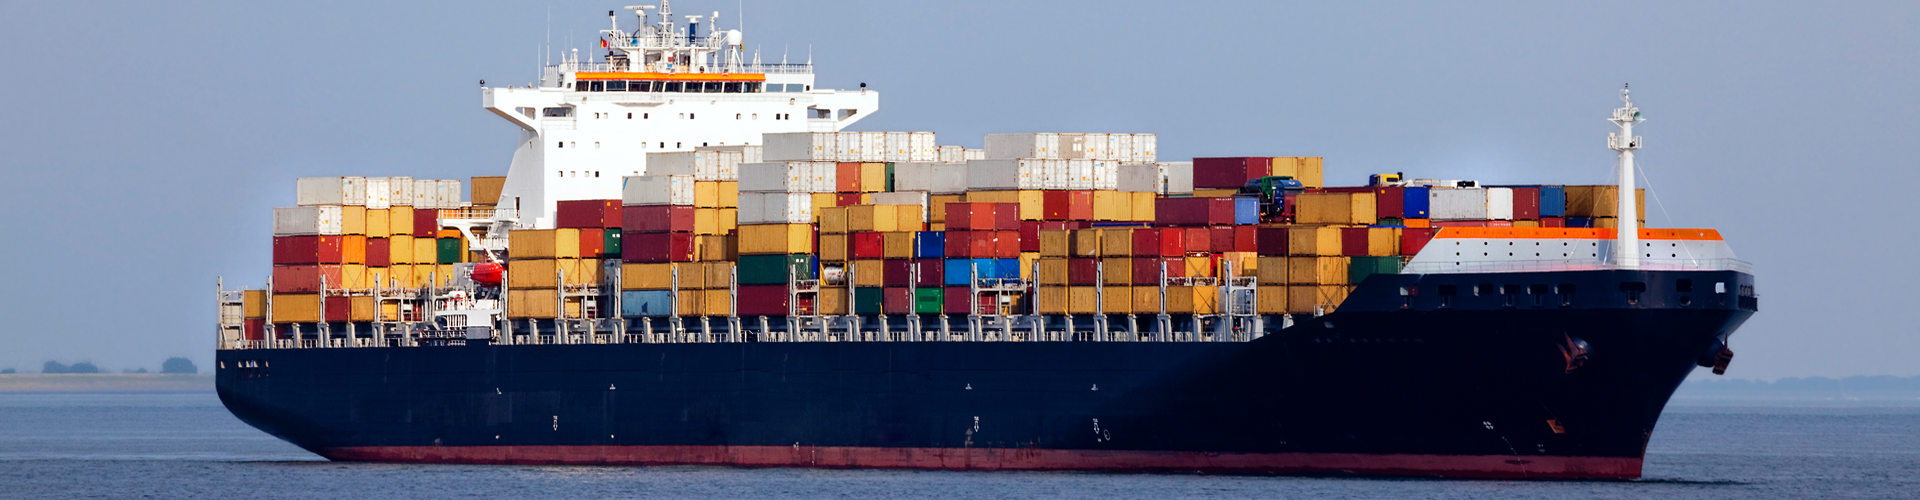 transglobal ocean freight services from transglobal